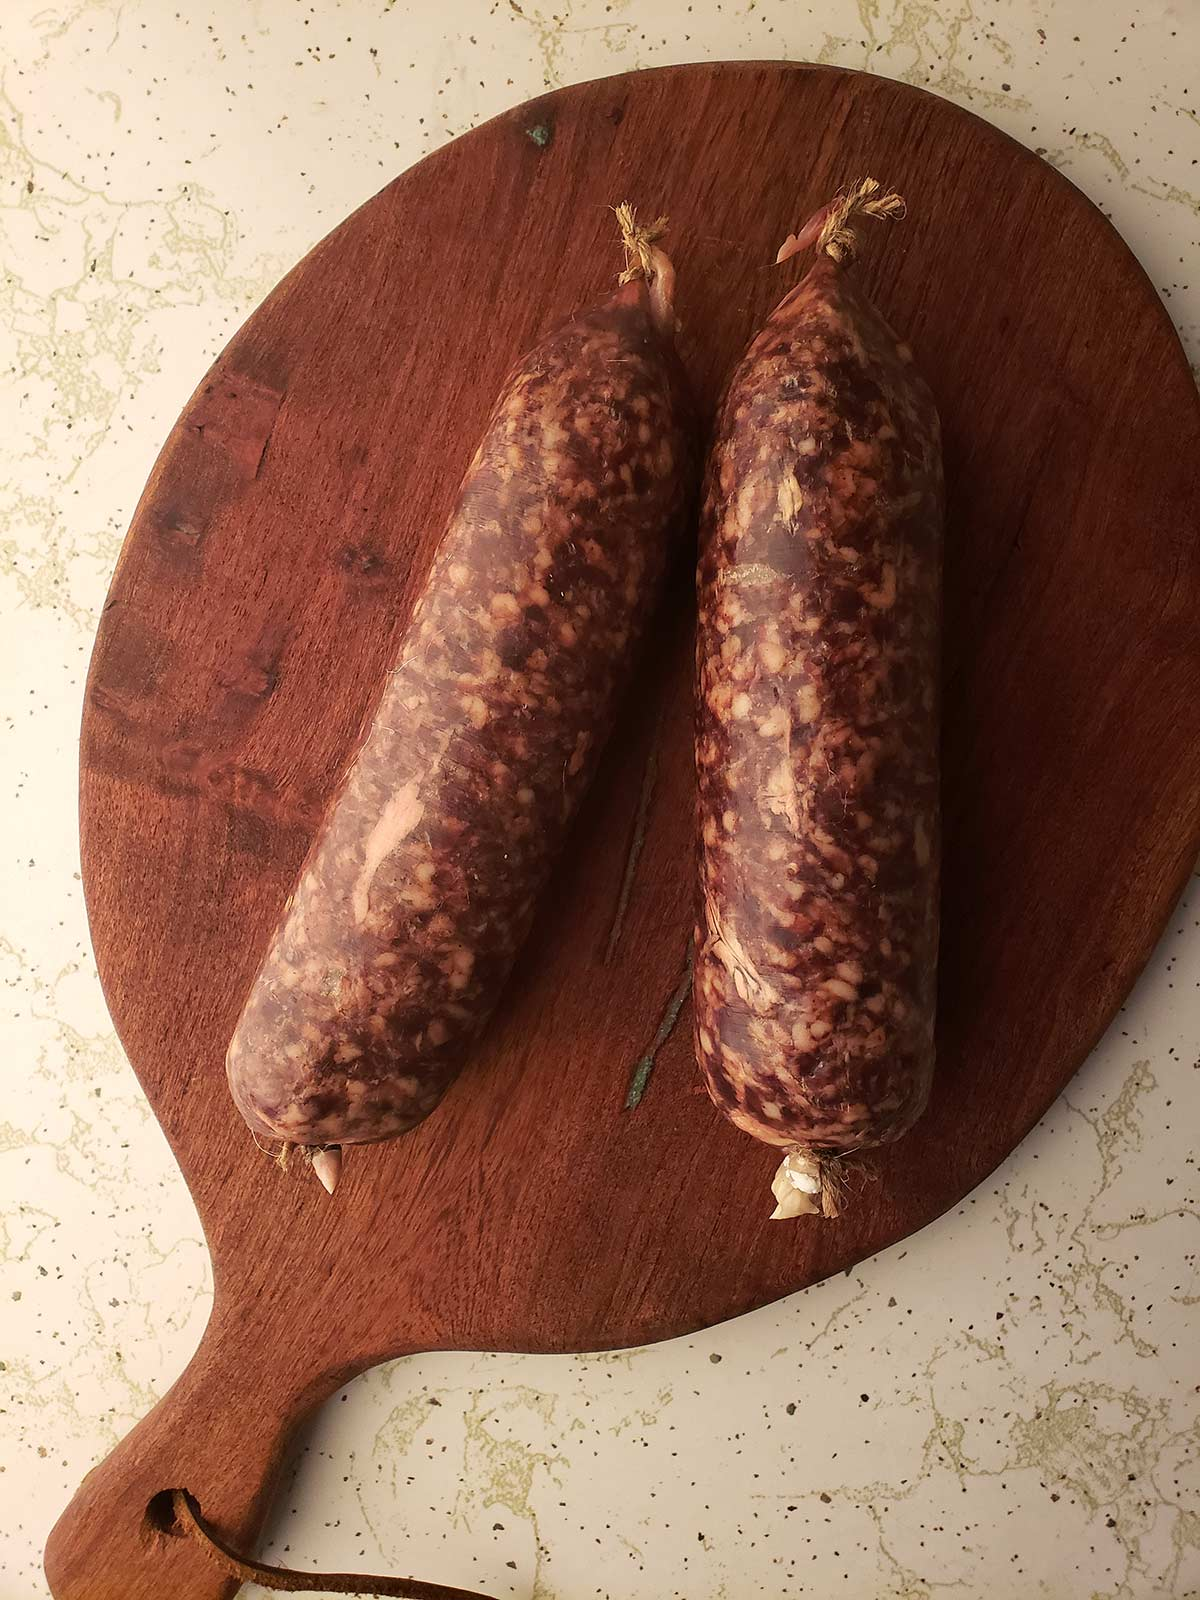 Uncooked cotechino on a cutting board